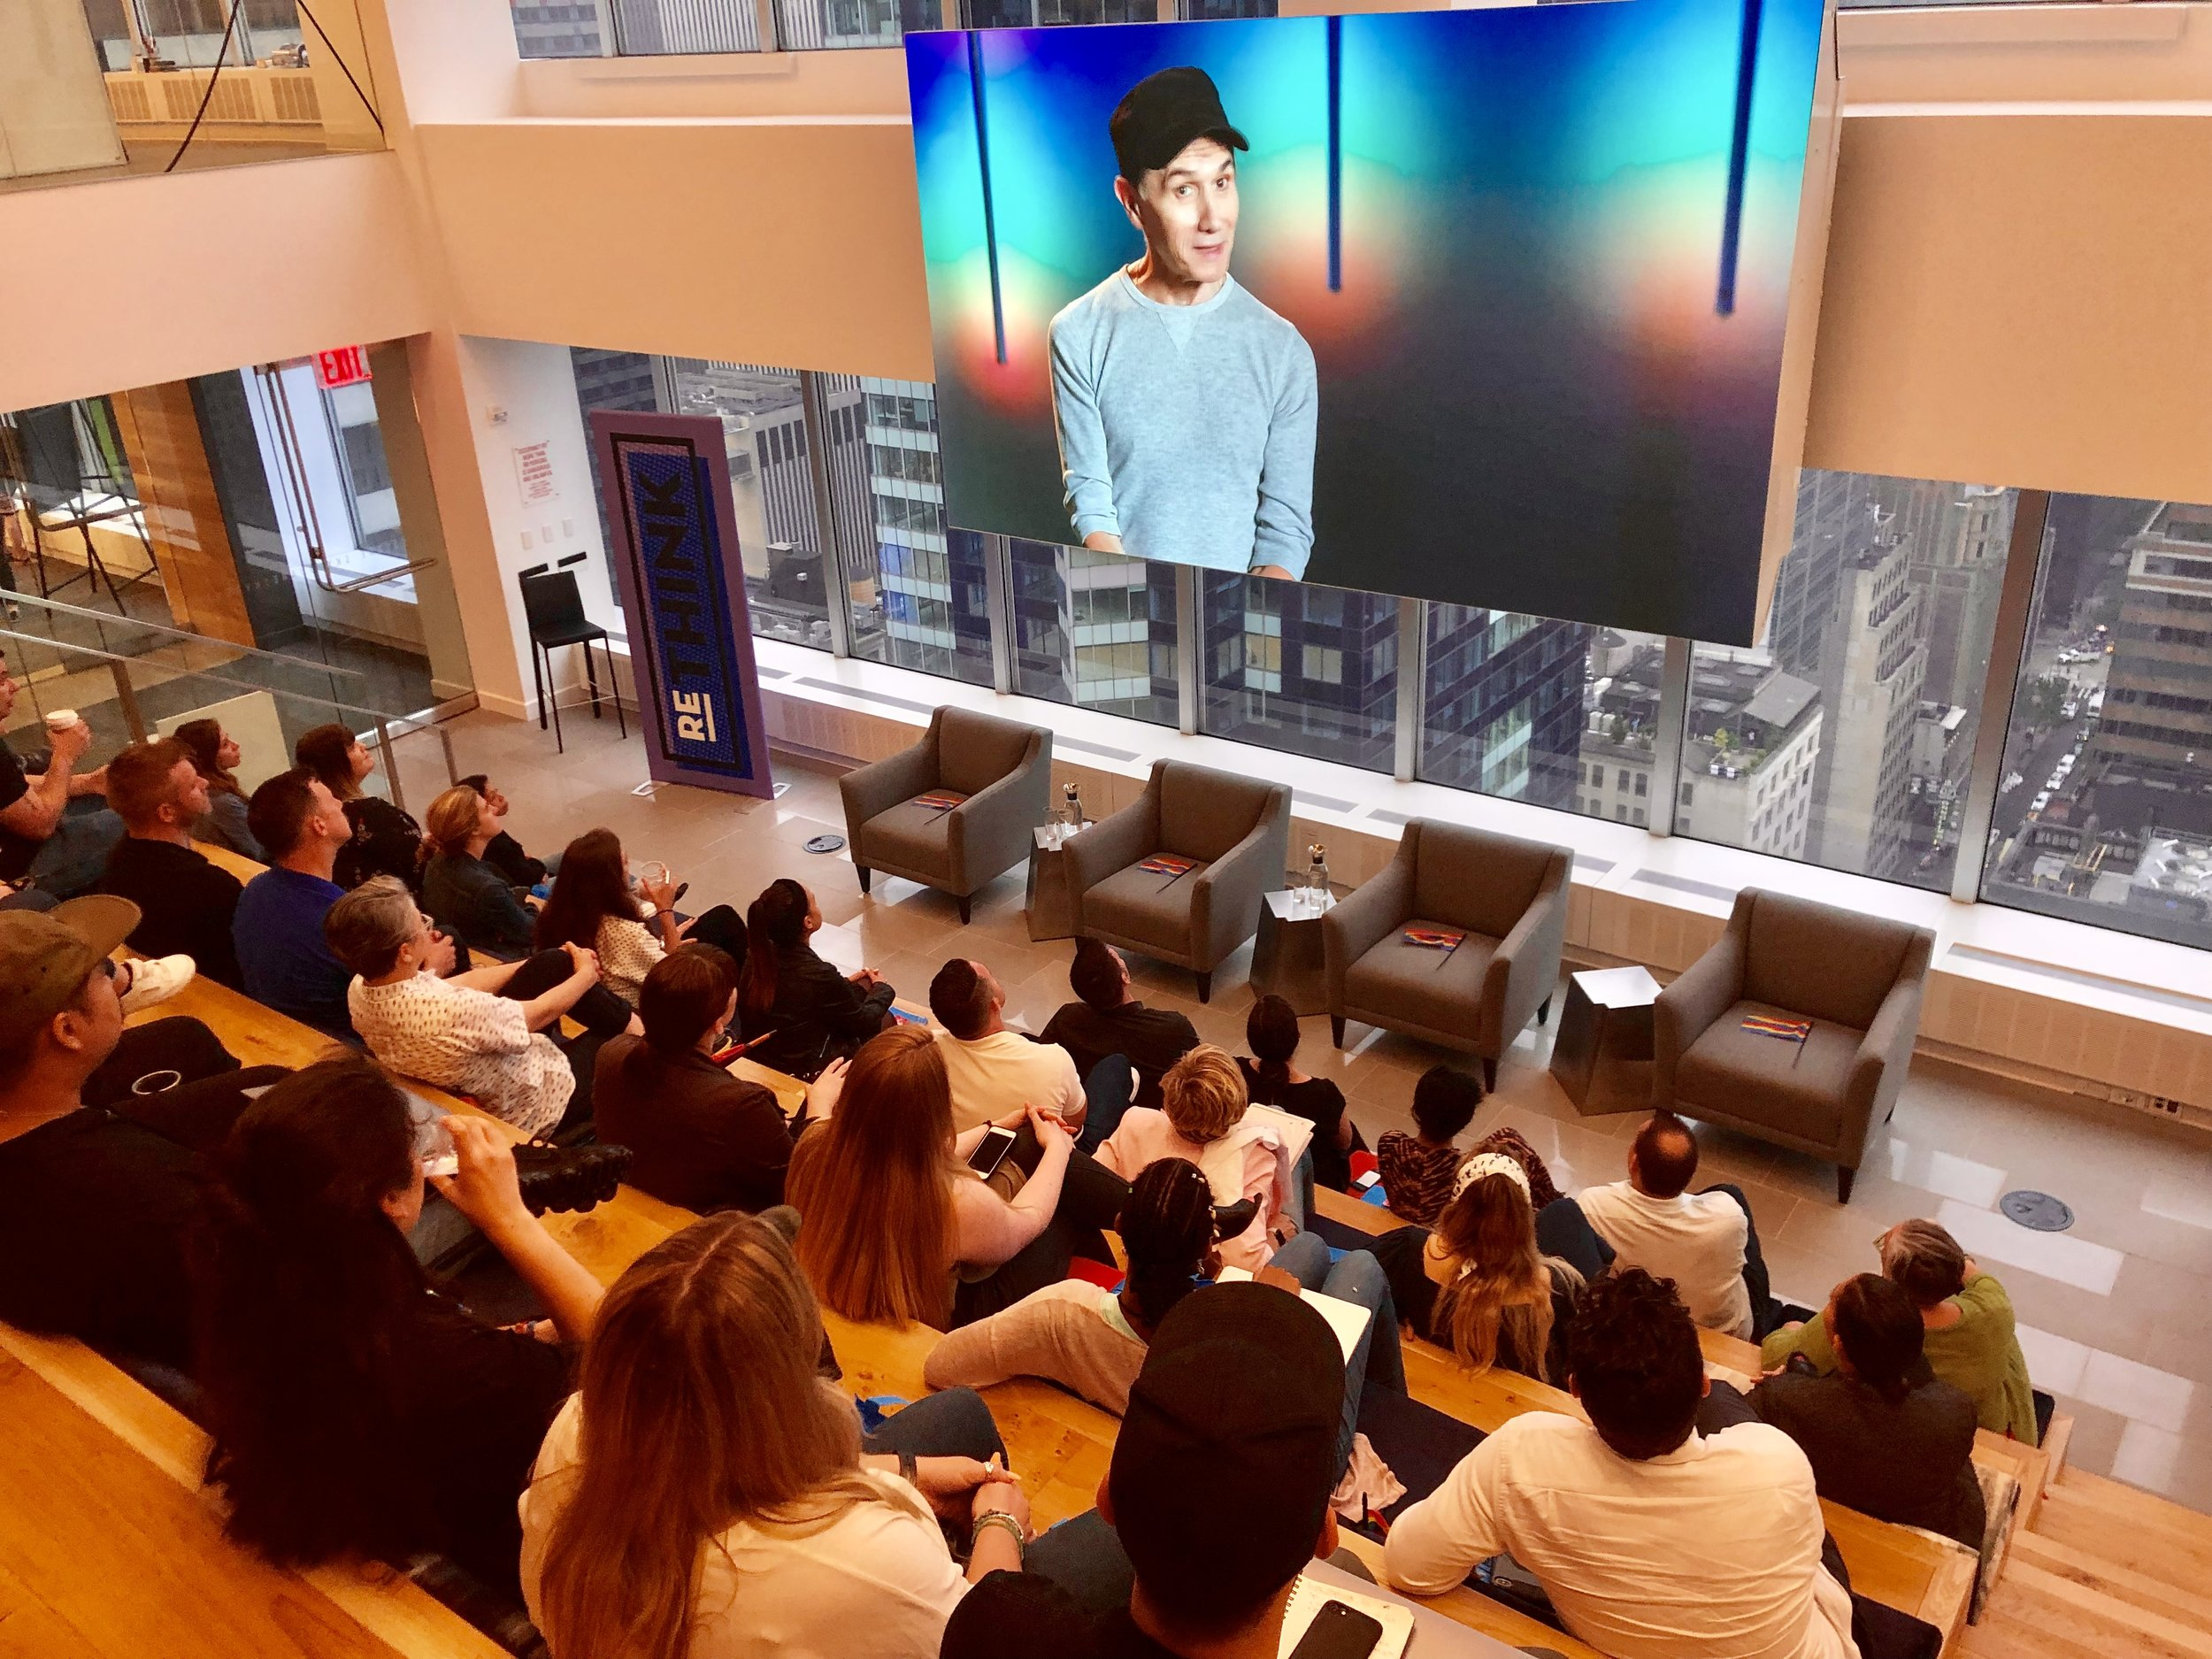 A scene from Randall's documentary 'The Diversity of Pride,' which was screened during the Pride Month edition of Viacom Ad Solutions' ReThink forum